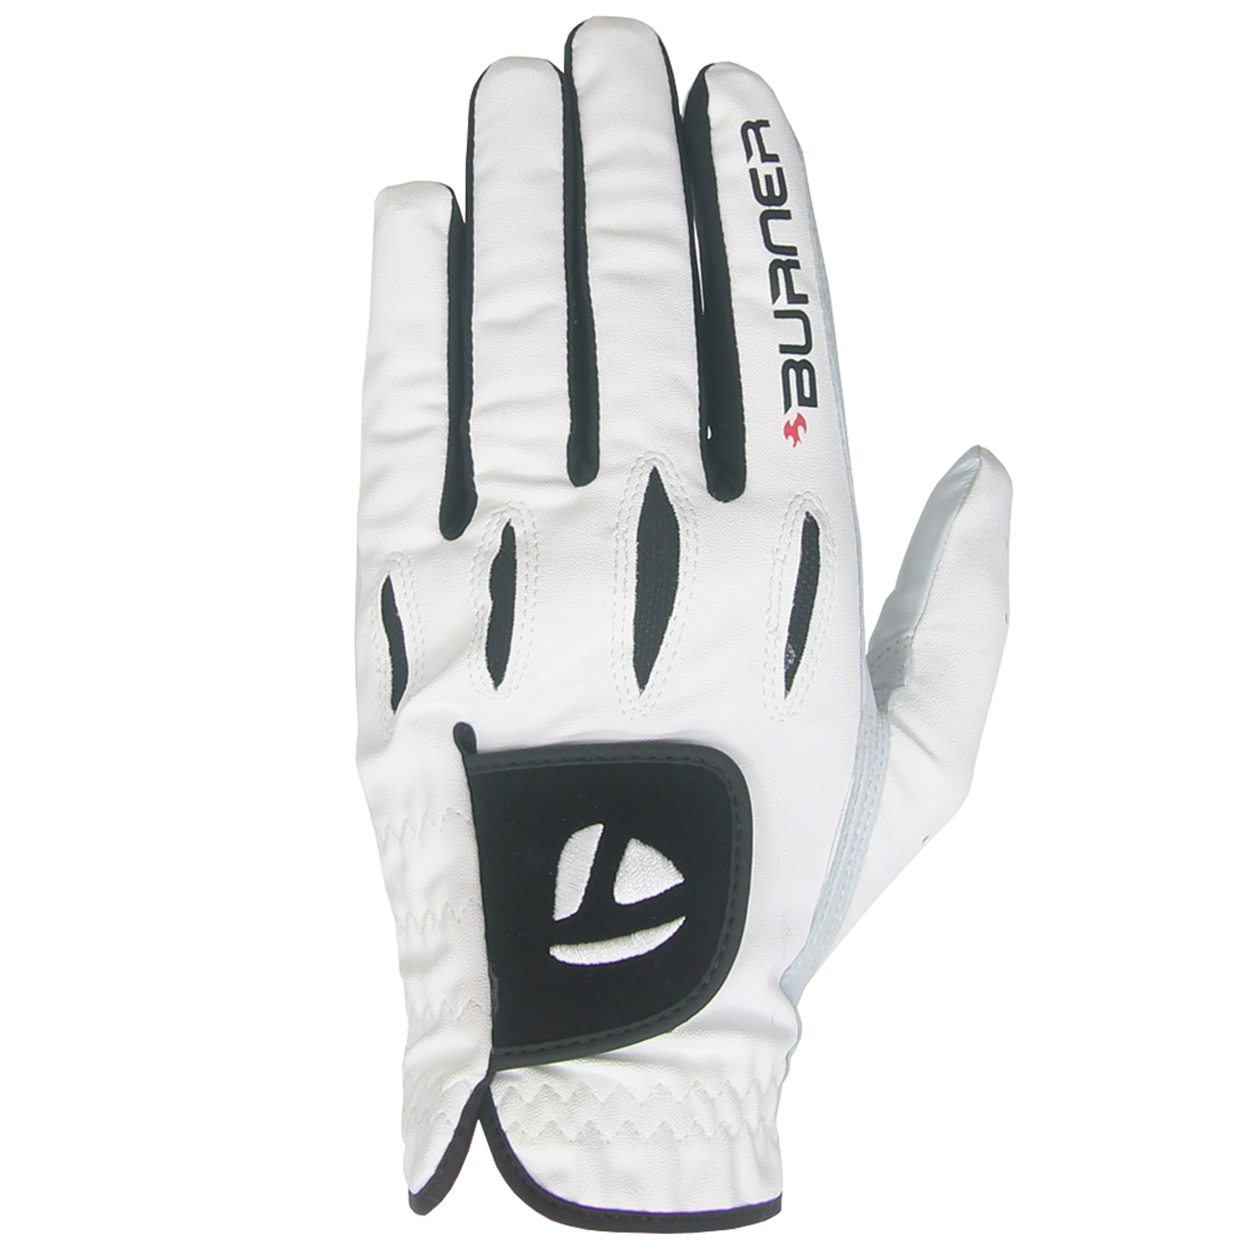 3-pack TaylorMade Burner GS Mens Golf Gloves